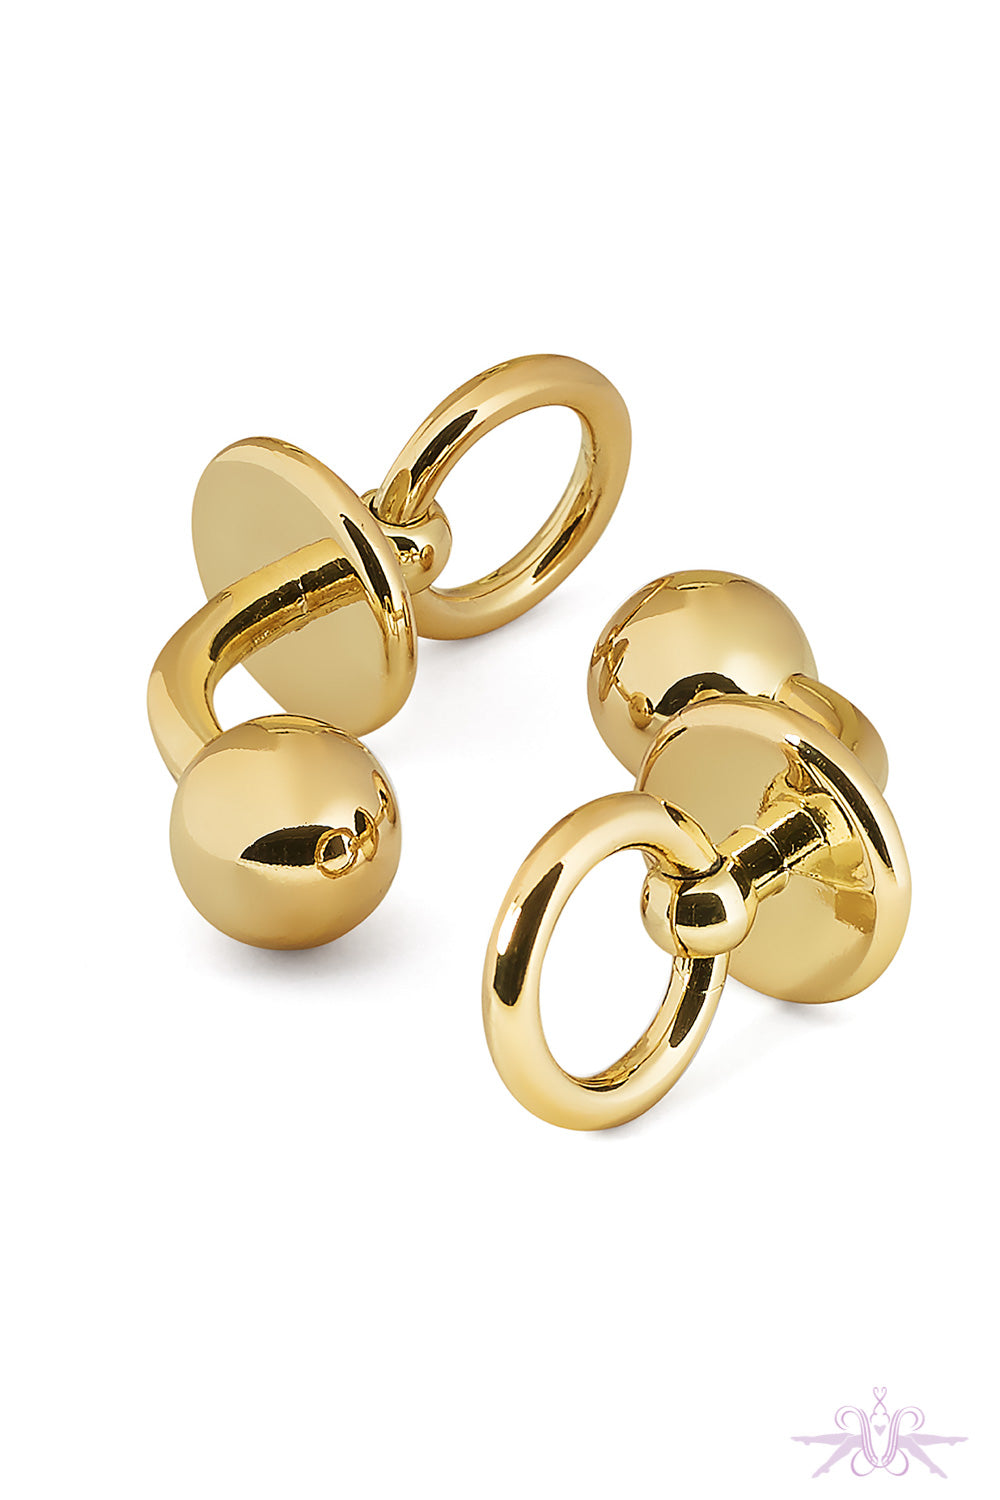 Maison Close Chambre Noire Gold Cufflinks - Mayfair Stockings